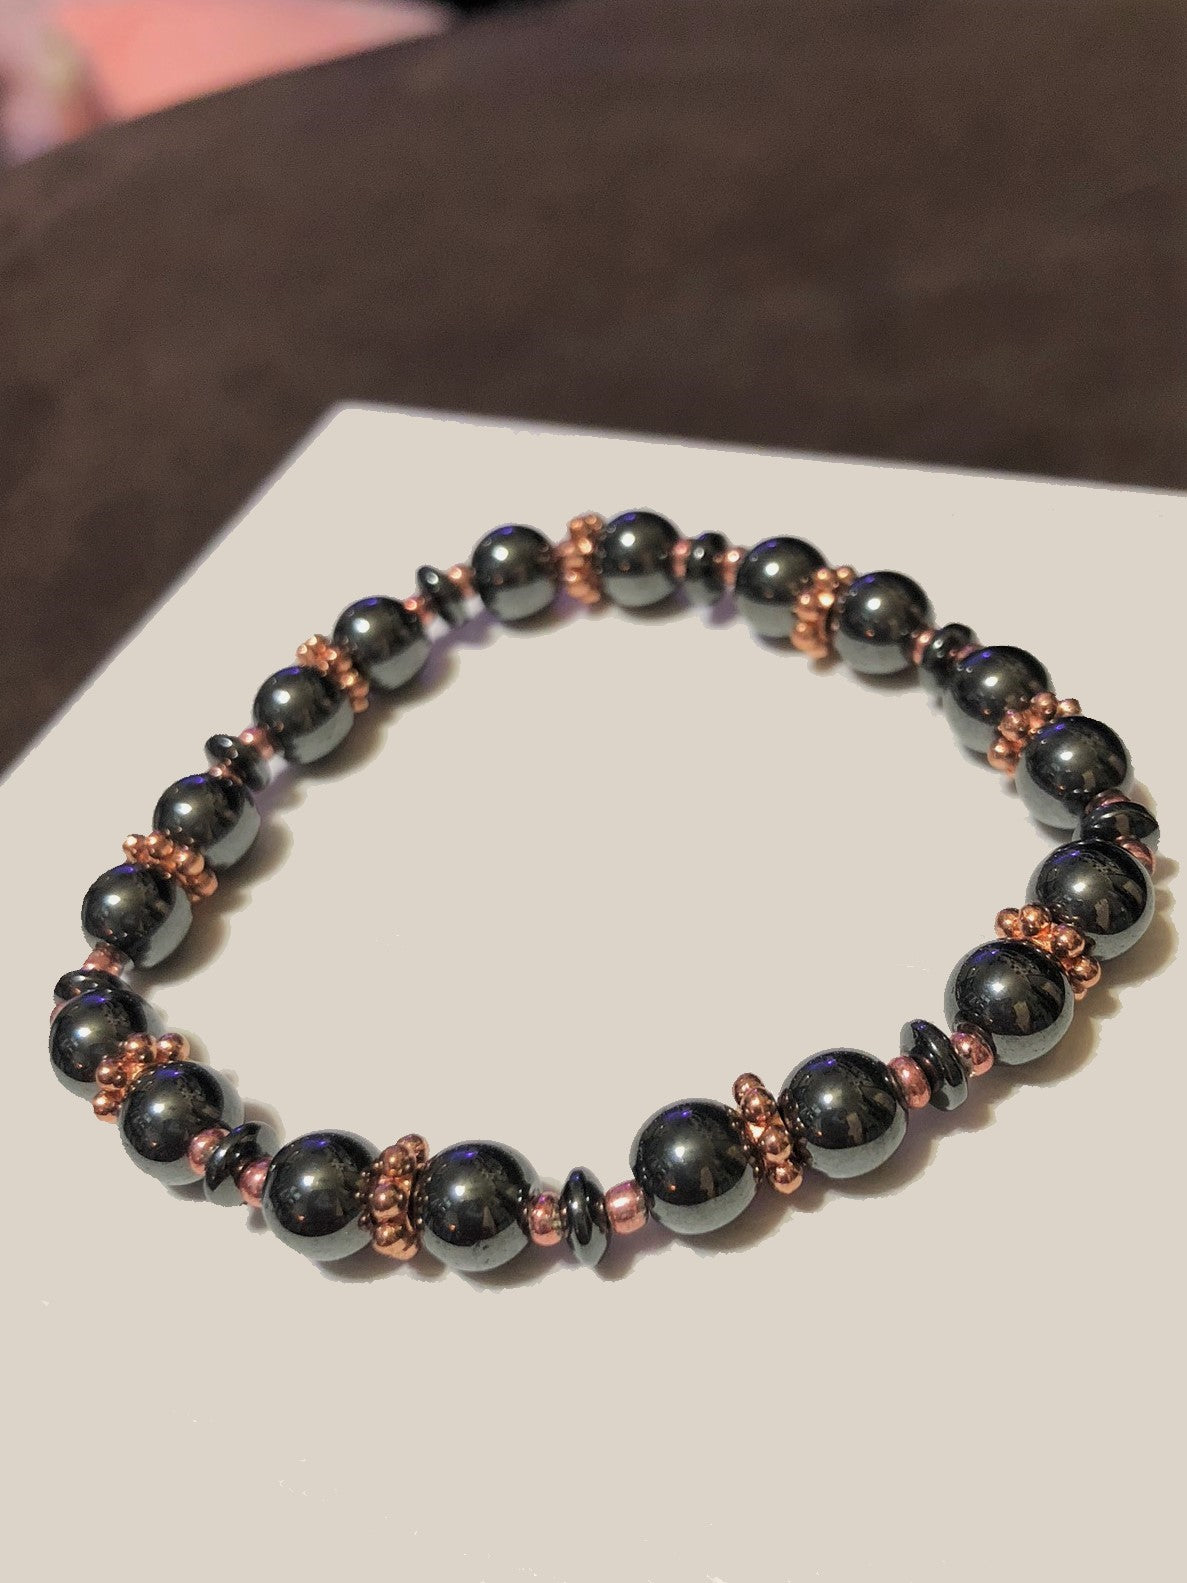 Hematite Beads with Rose Gold Metal Accents